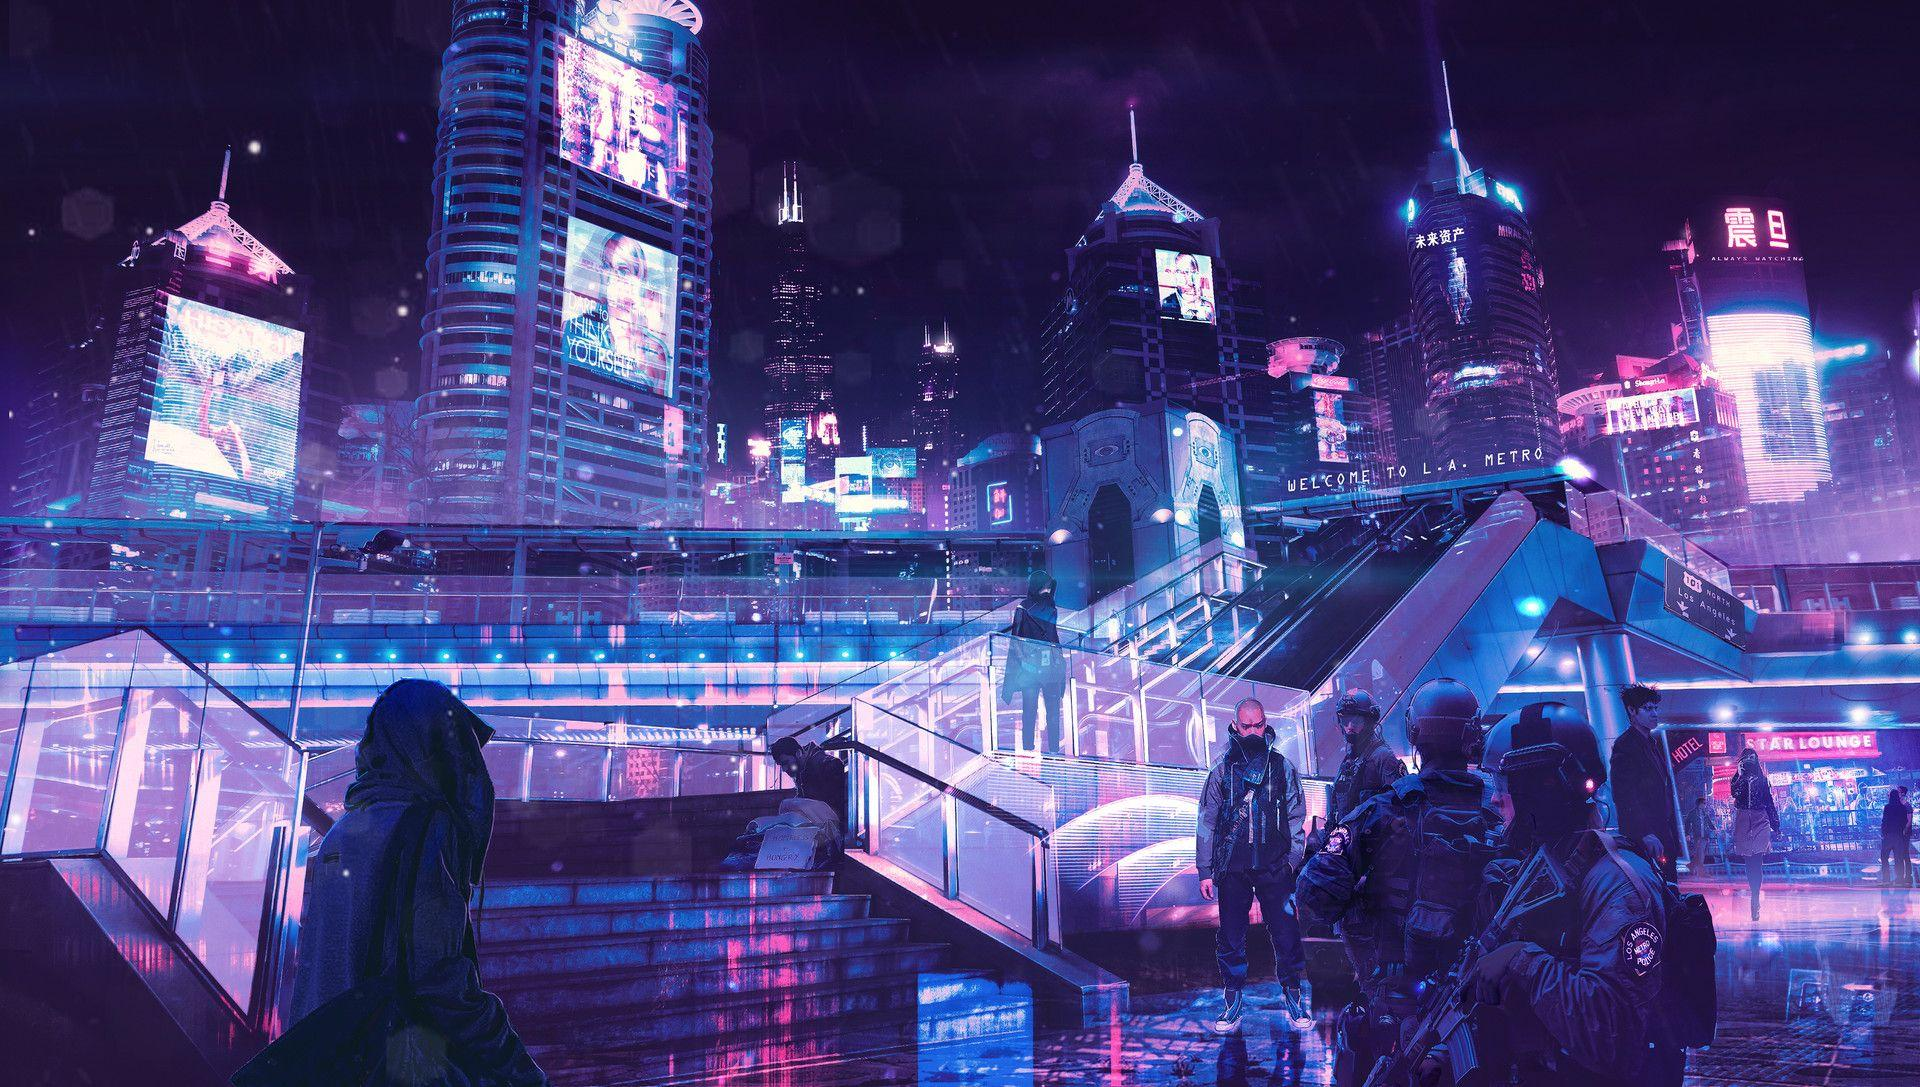 Neon City Wallpapers Wallpaper Cave